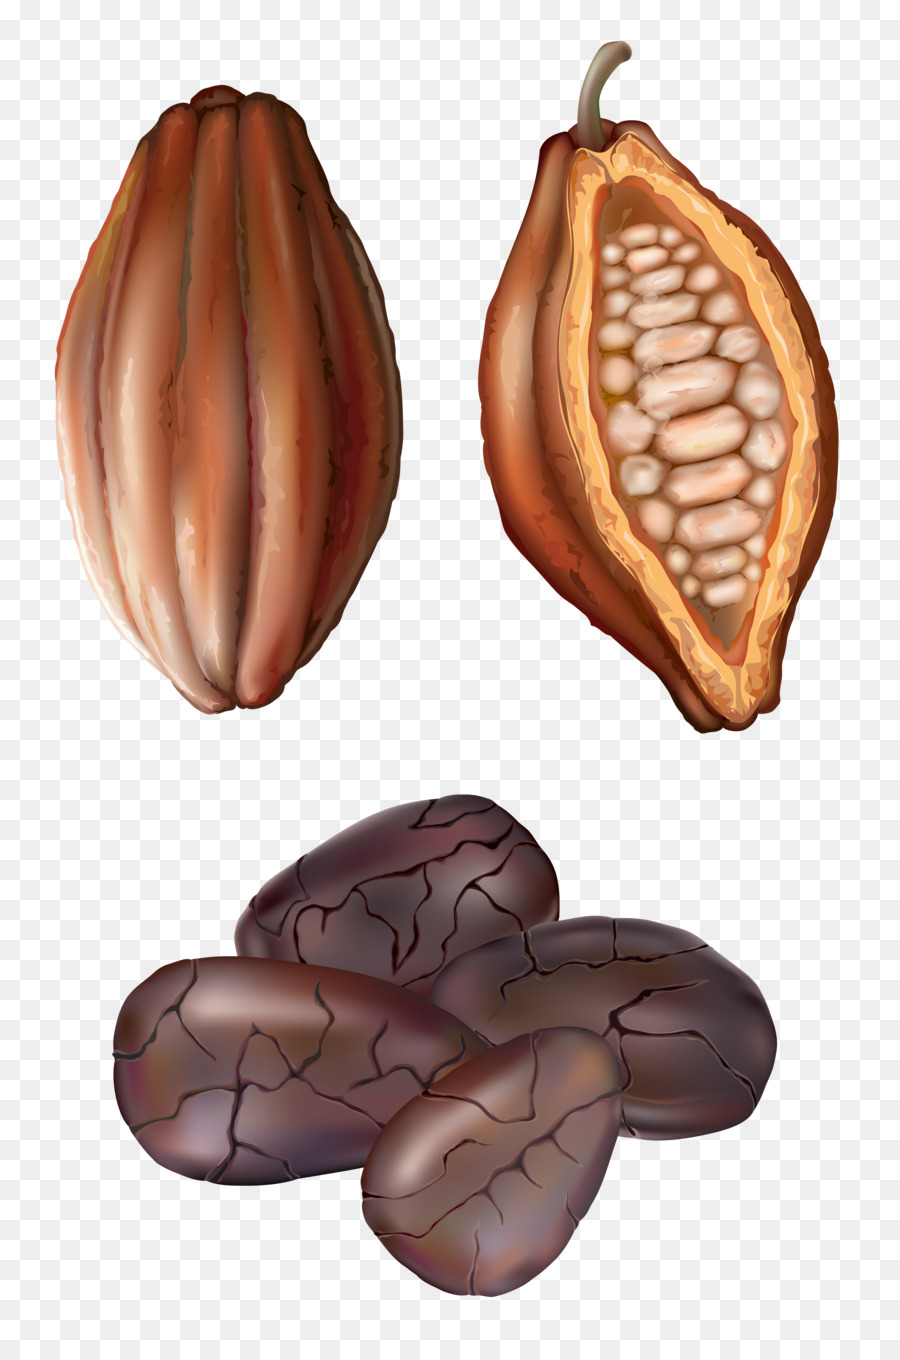 Cocoa bean drawing royalty. Beans clipart nuts